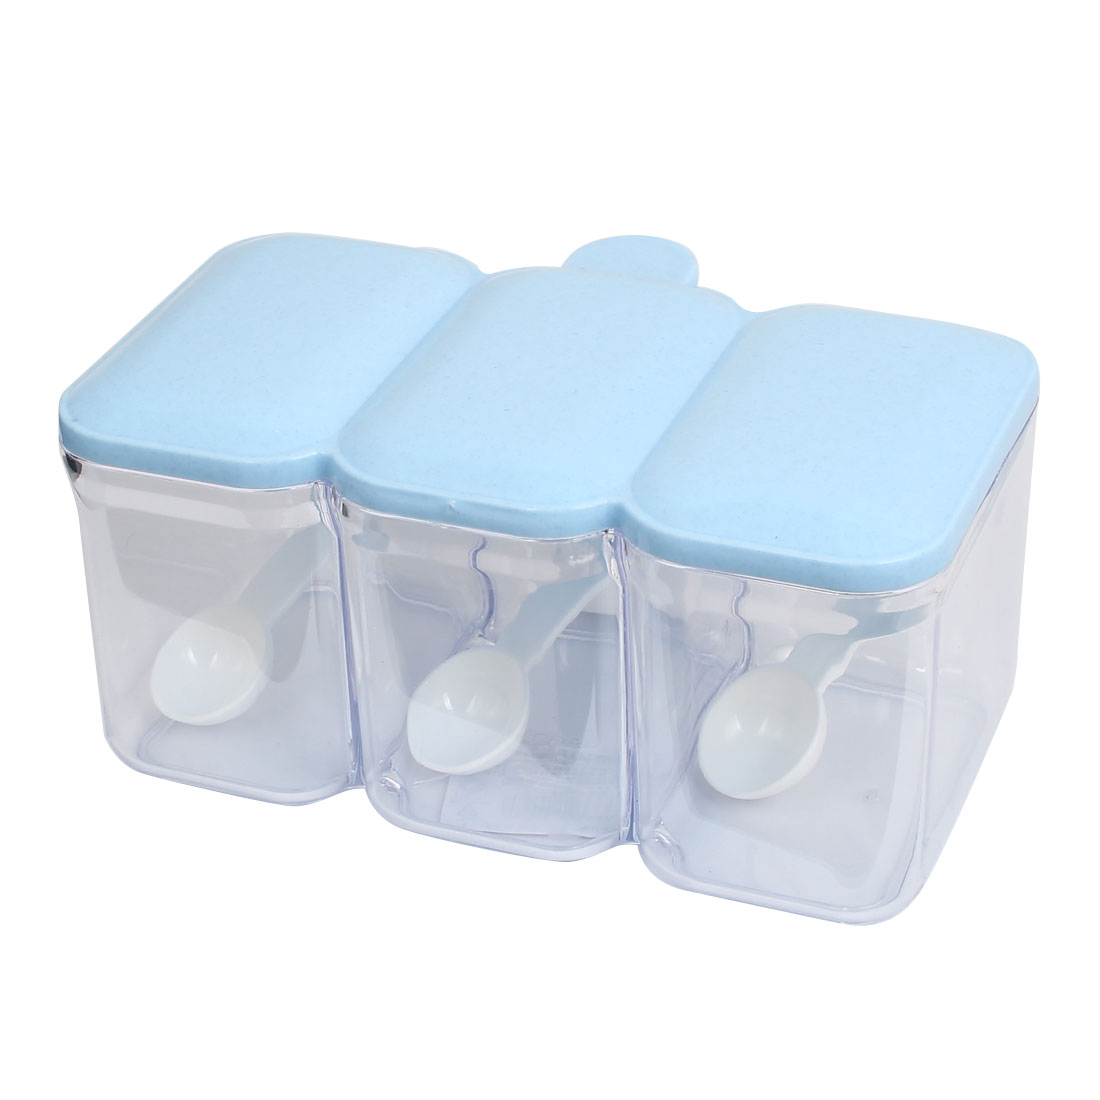 Plastic Rectangle 3 Compartments Condiment Holder Dispenser Tray White Blue